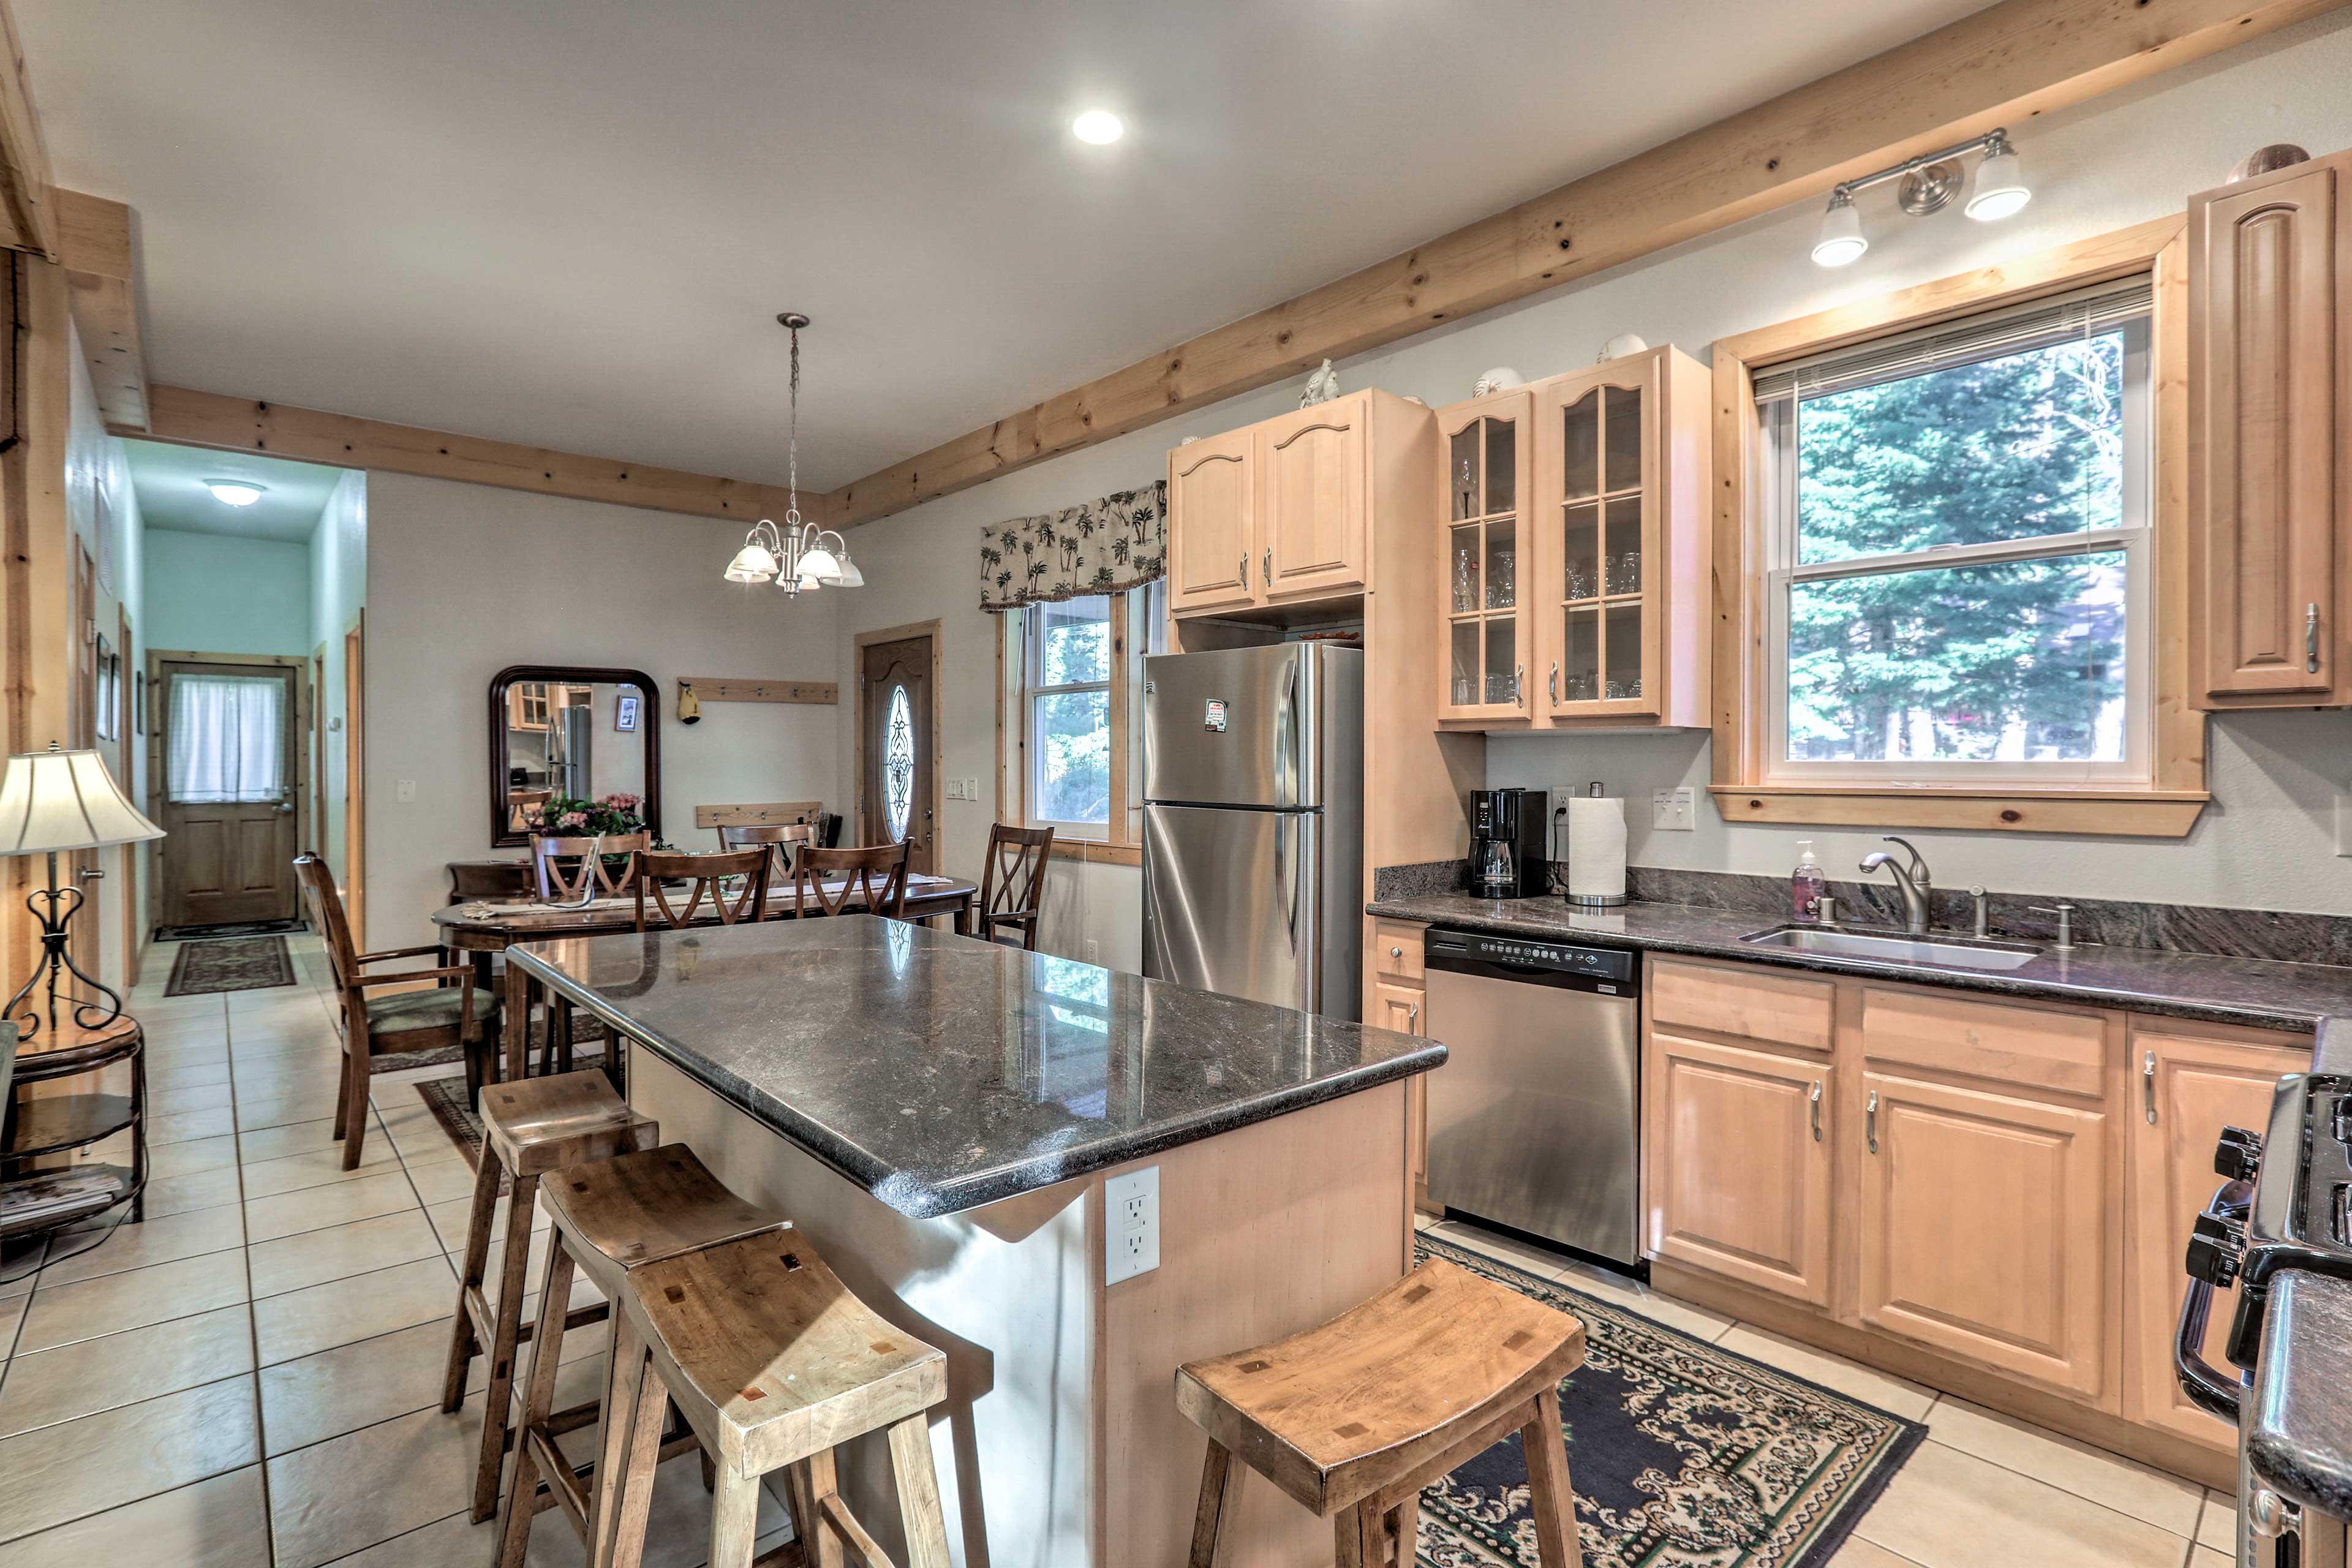 The house has a gourmet kitchen and beautiful wooden accents.